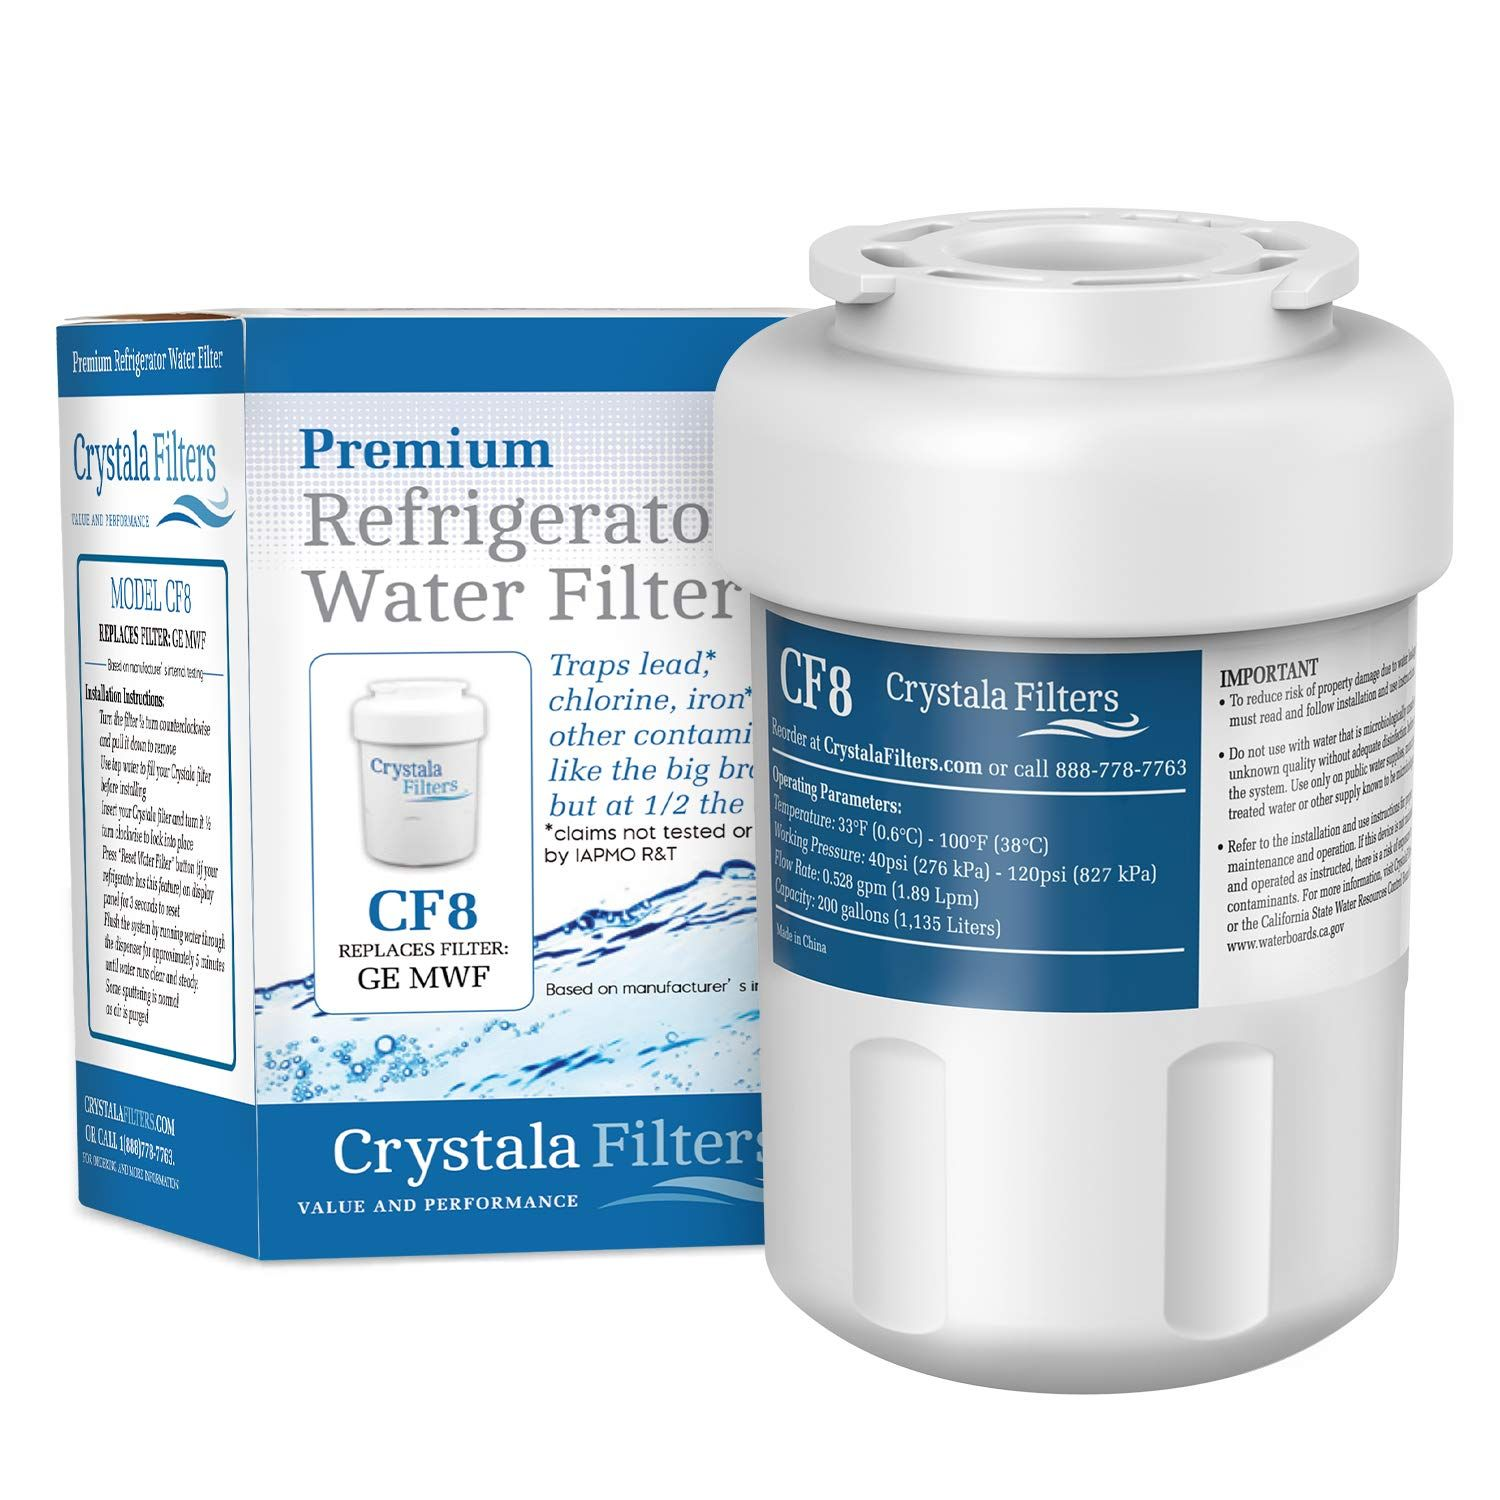 Mwf Water Filter For Ge Refrigerator Crystala Filters Compatible With Ge Mwf Smartwater Mwfa Mwfp Gwf Gwfa Kenmore 9991 Water Filter Filters Coding